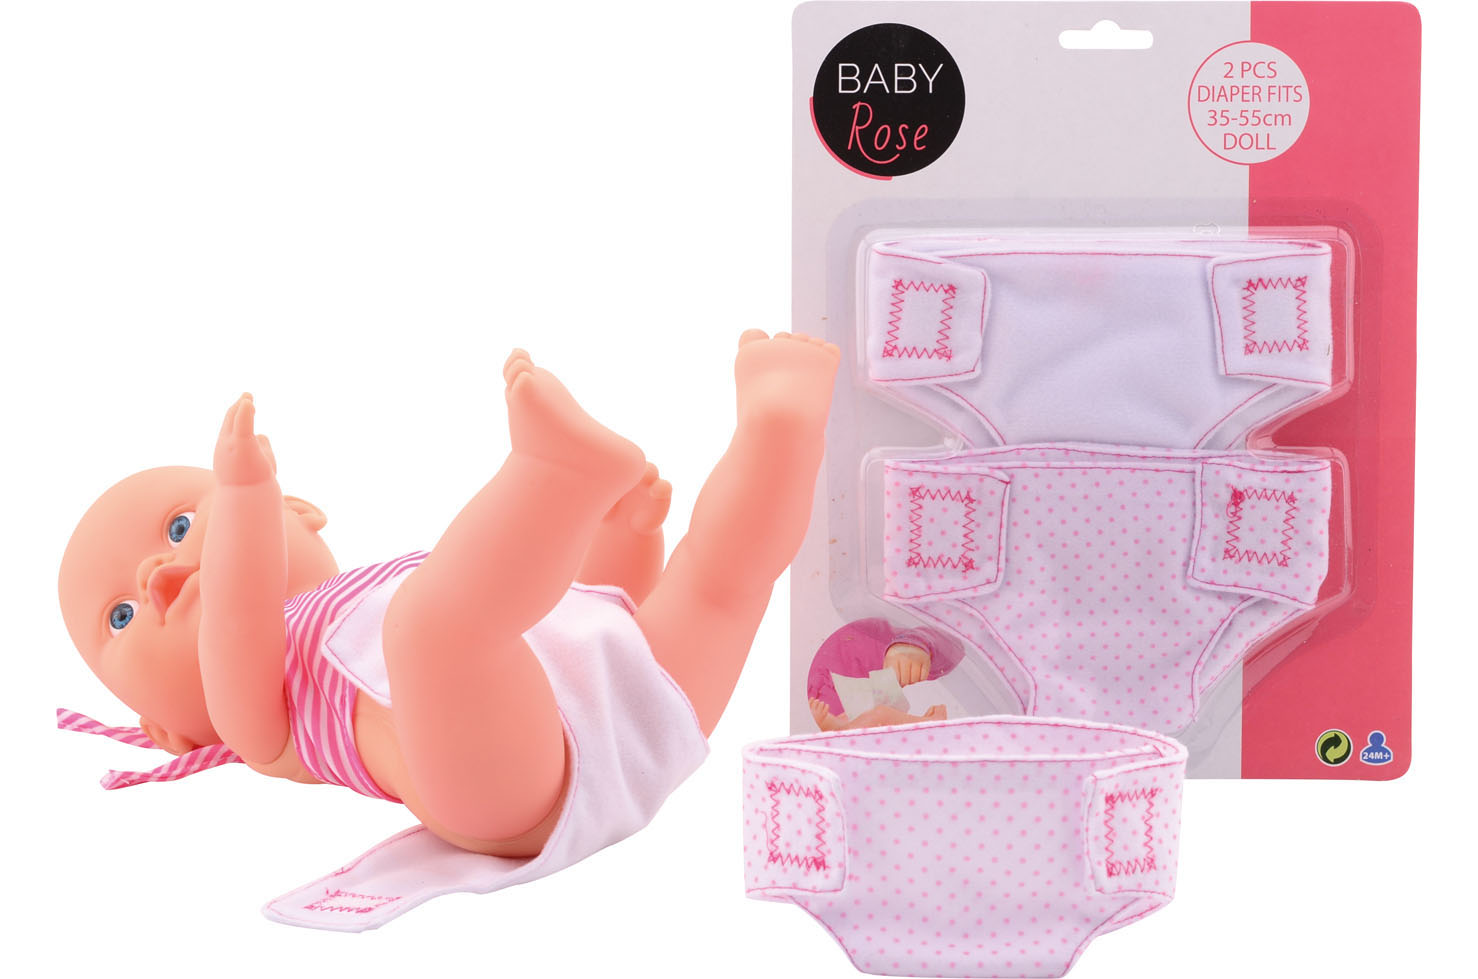 Baby rose 2 stoffen luiers 27593